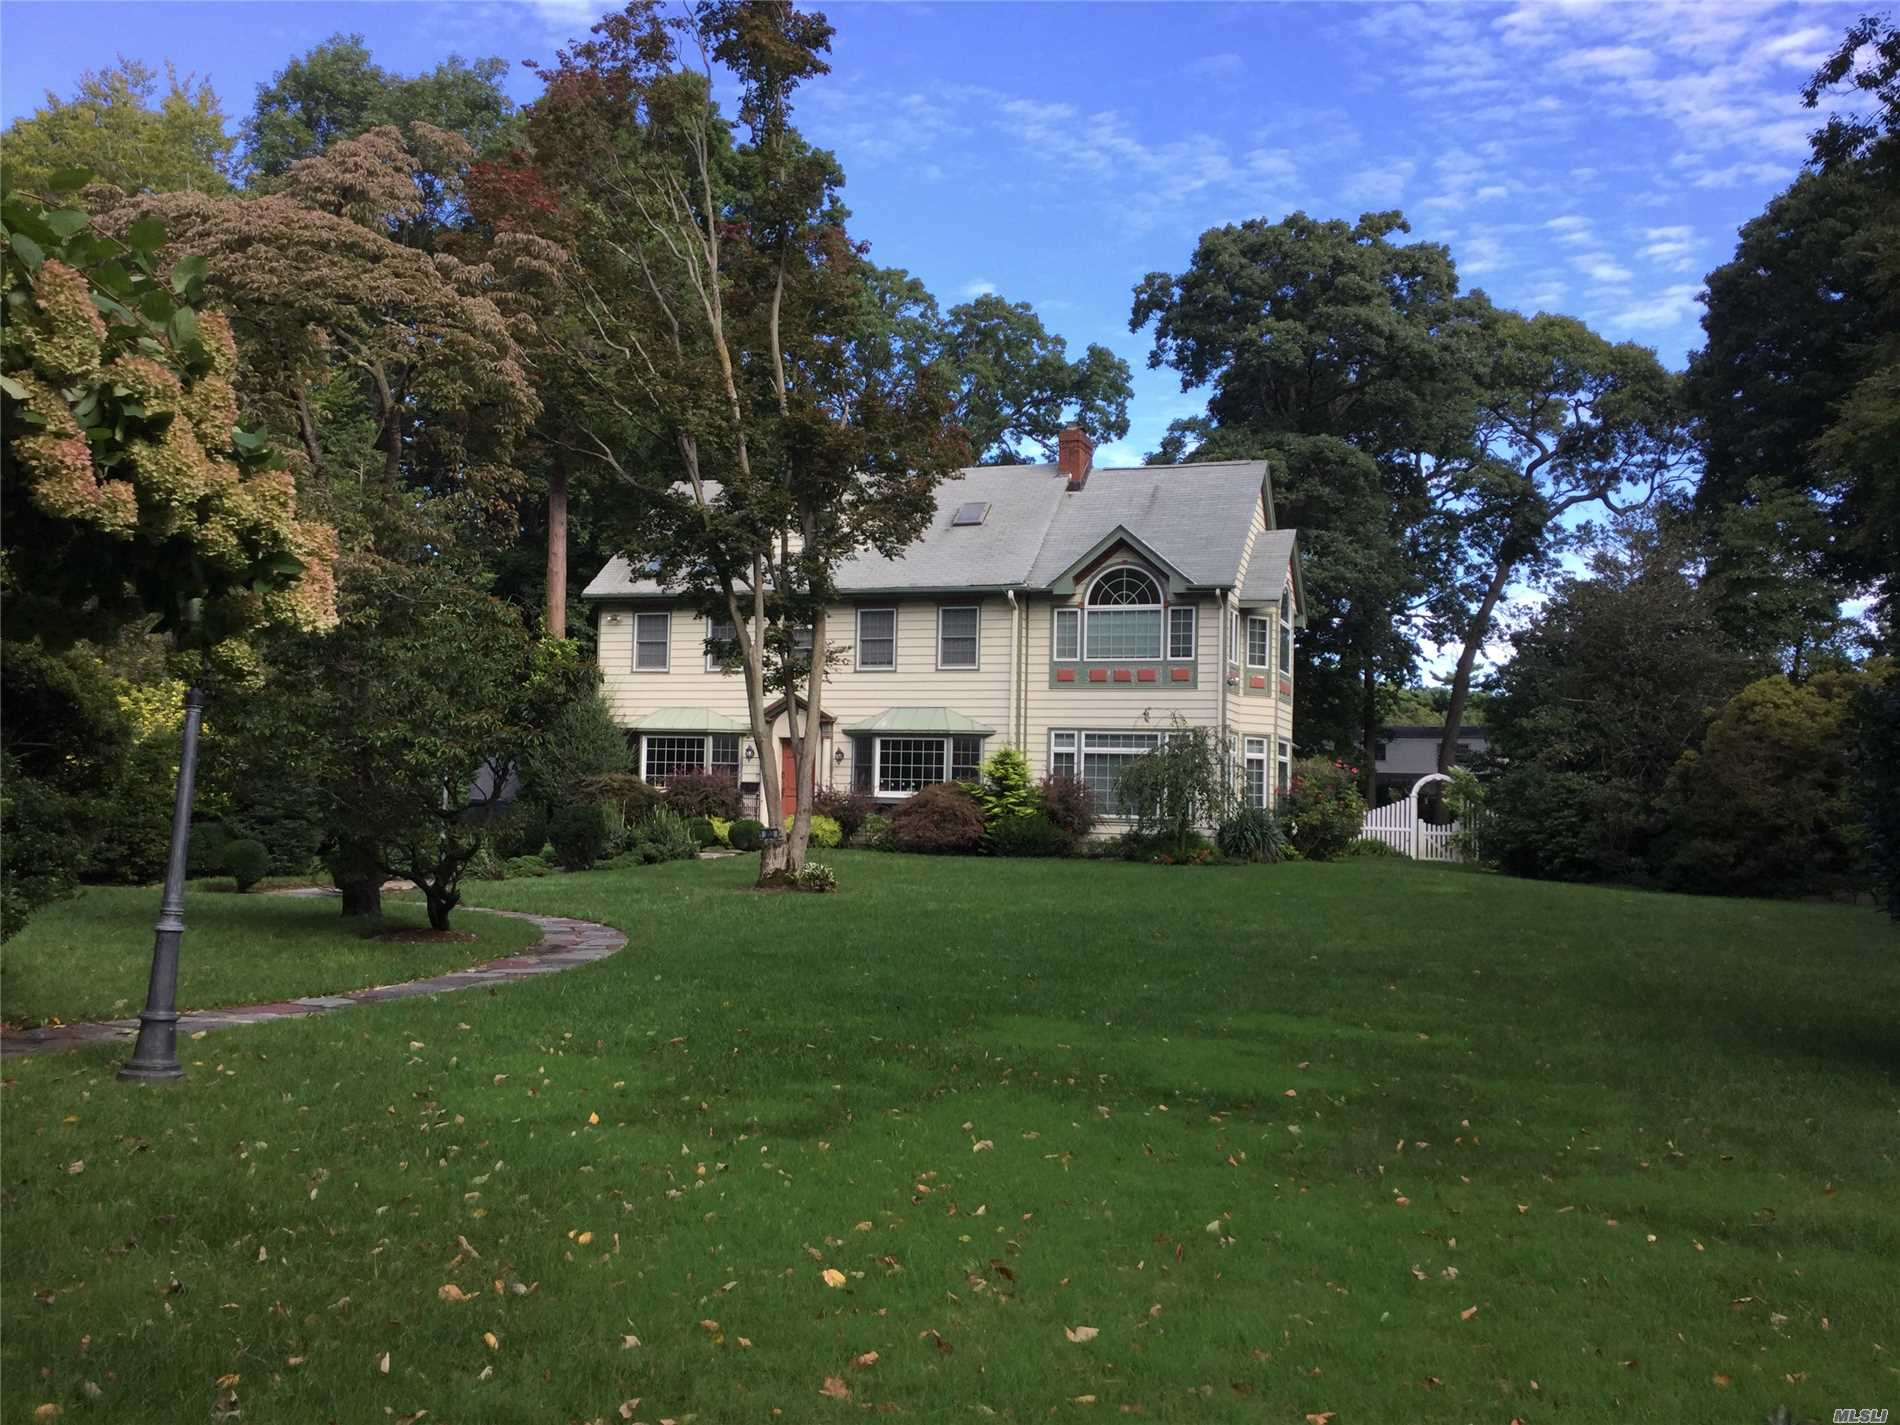 Custom Colonial On 1 Acre Landscaped Property W Lg Eik And Sunken Familt Rm W/ Cathedrial Ceiling Overlooking Lush Huge Yard.